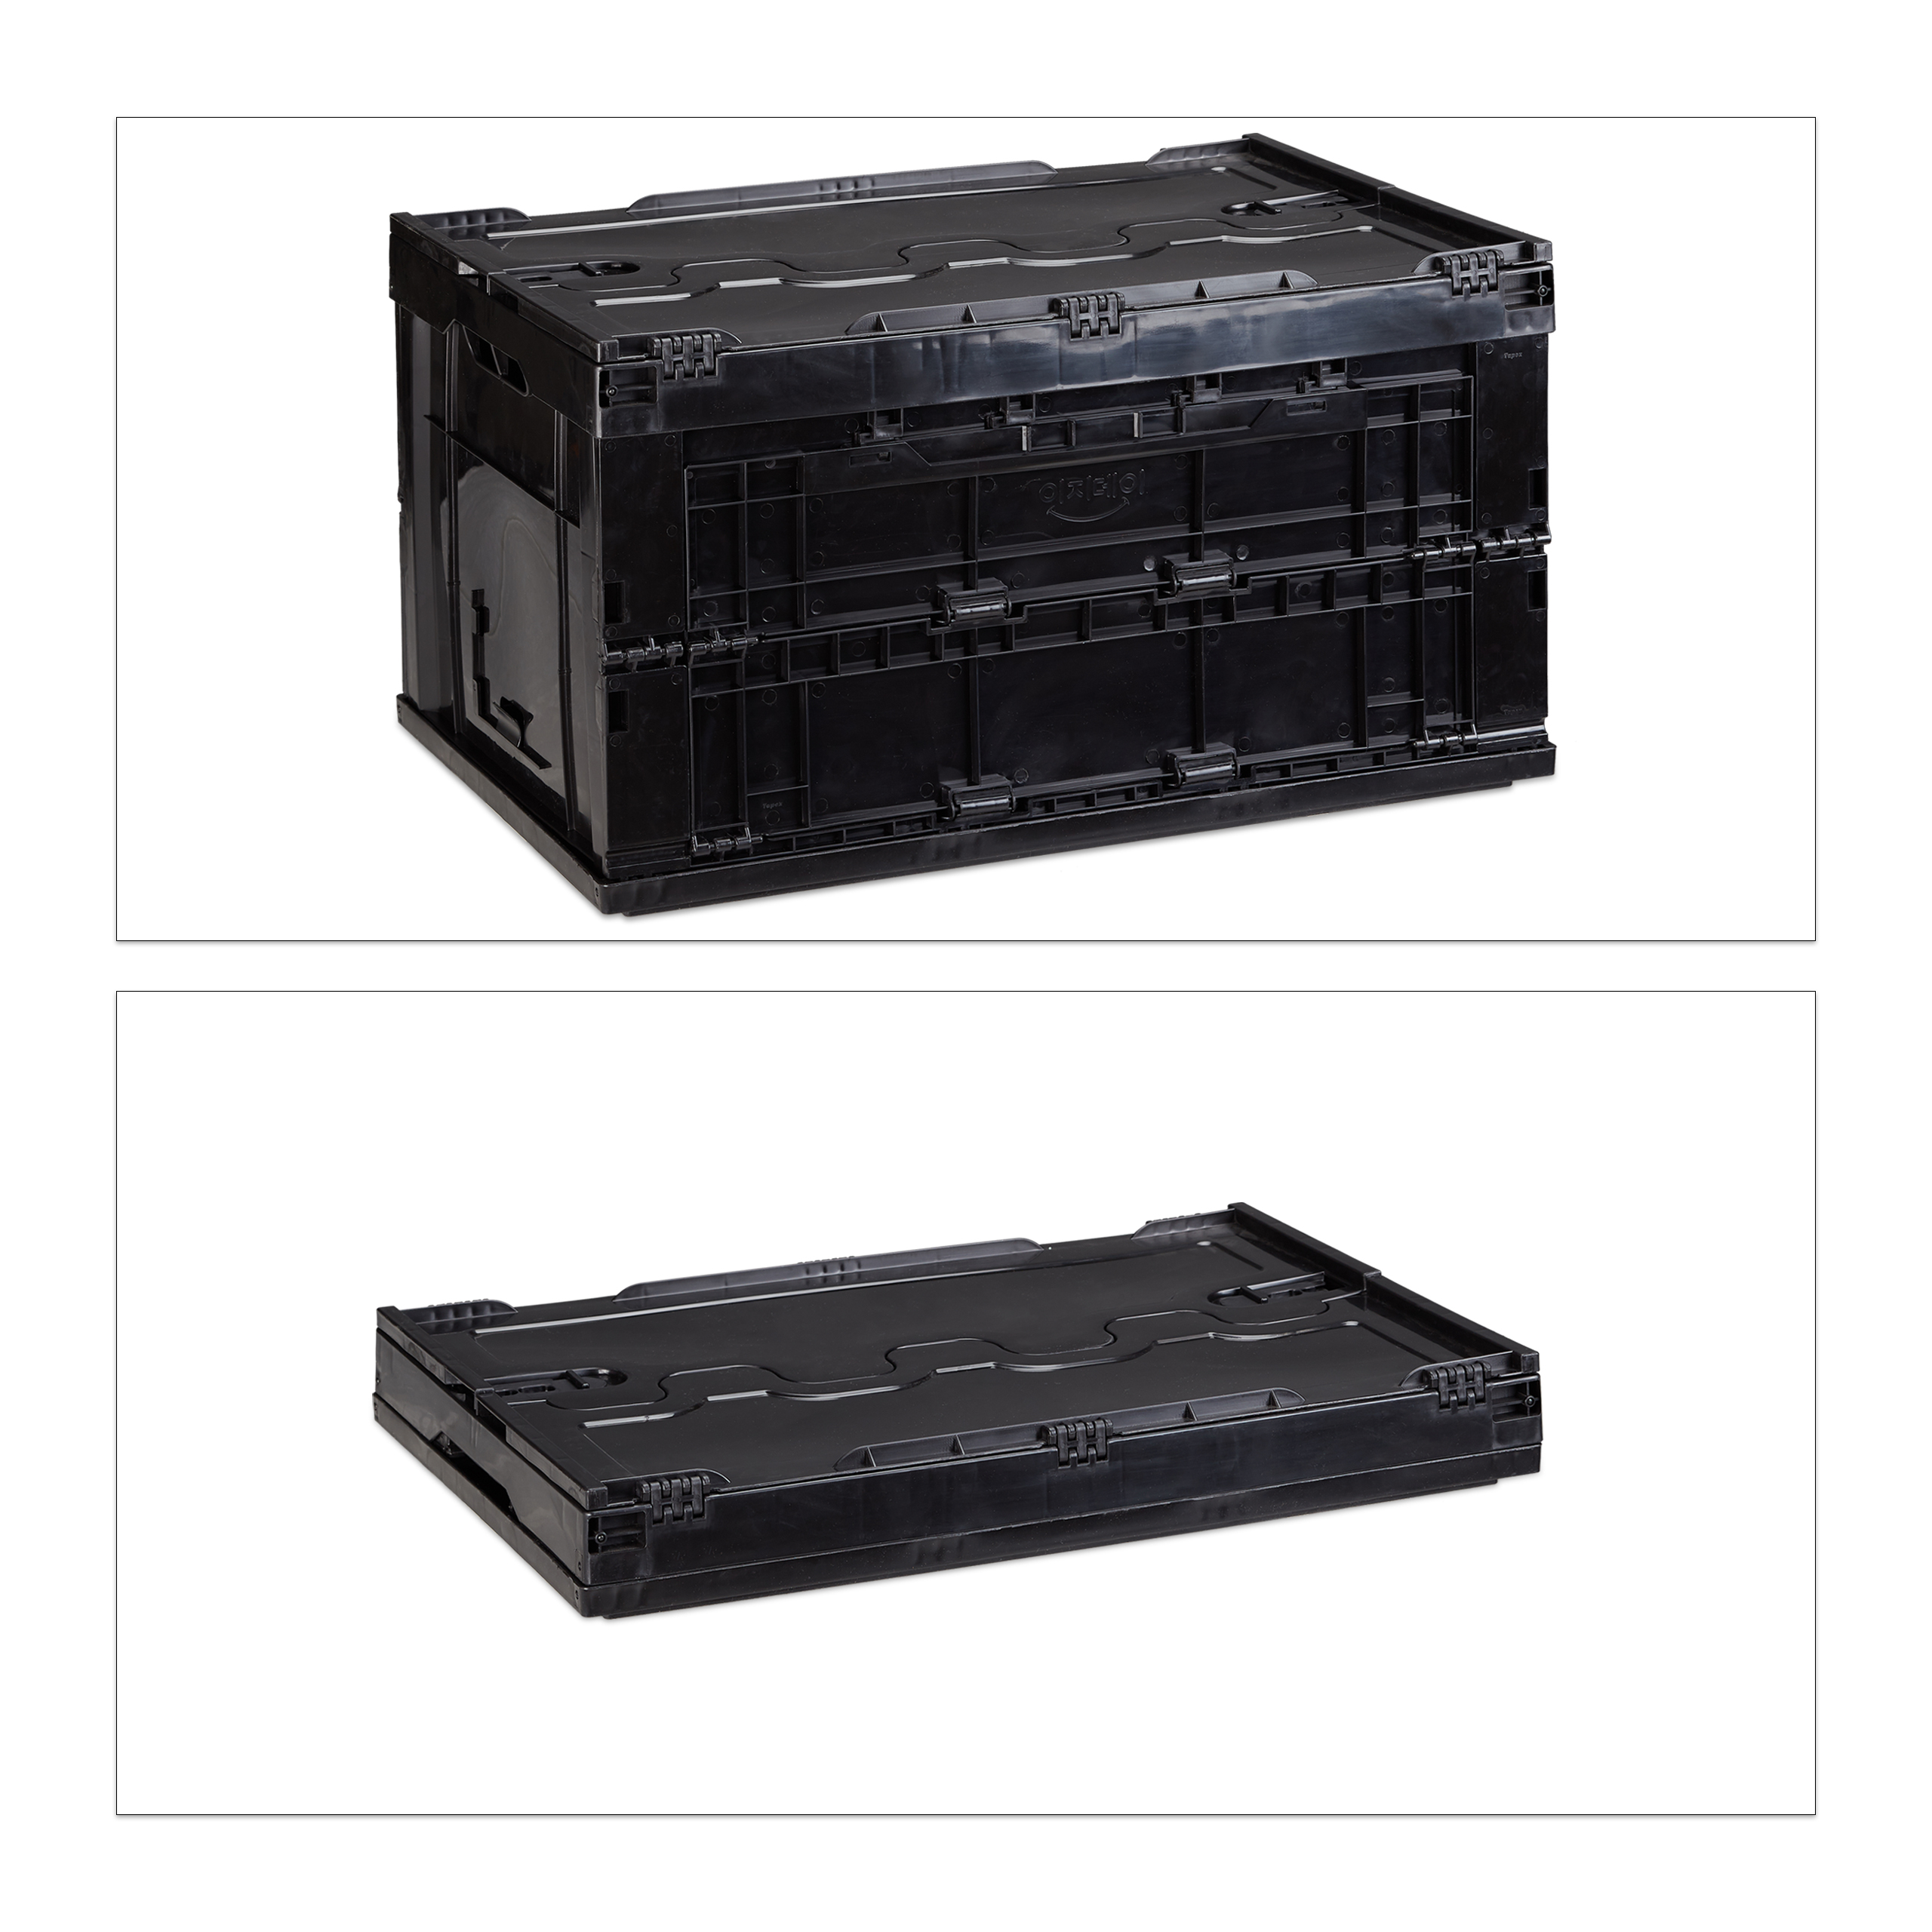 4x faltbox mit deckel 60 l aufbewahrungsbox transportbox universalbox klappbar ebay. Black Bedroom Furniture Sets. Home Design Ideas